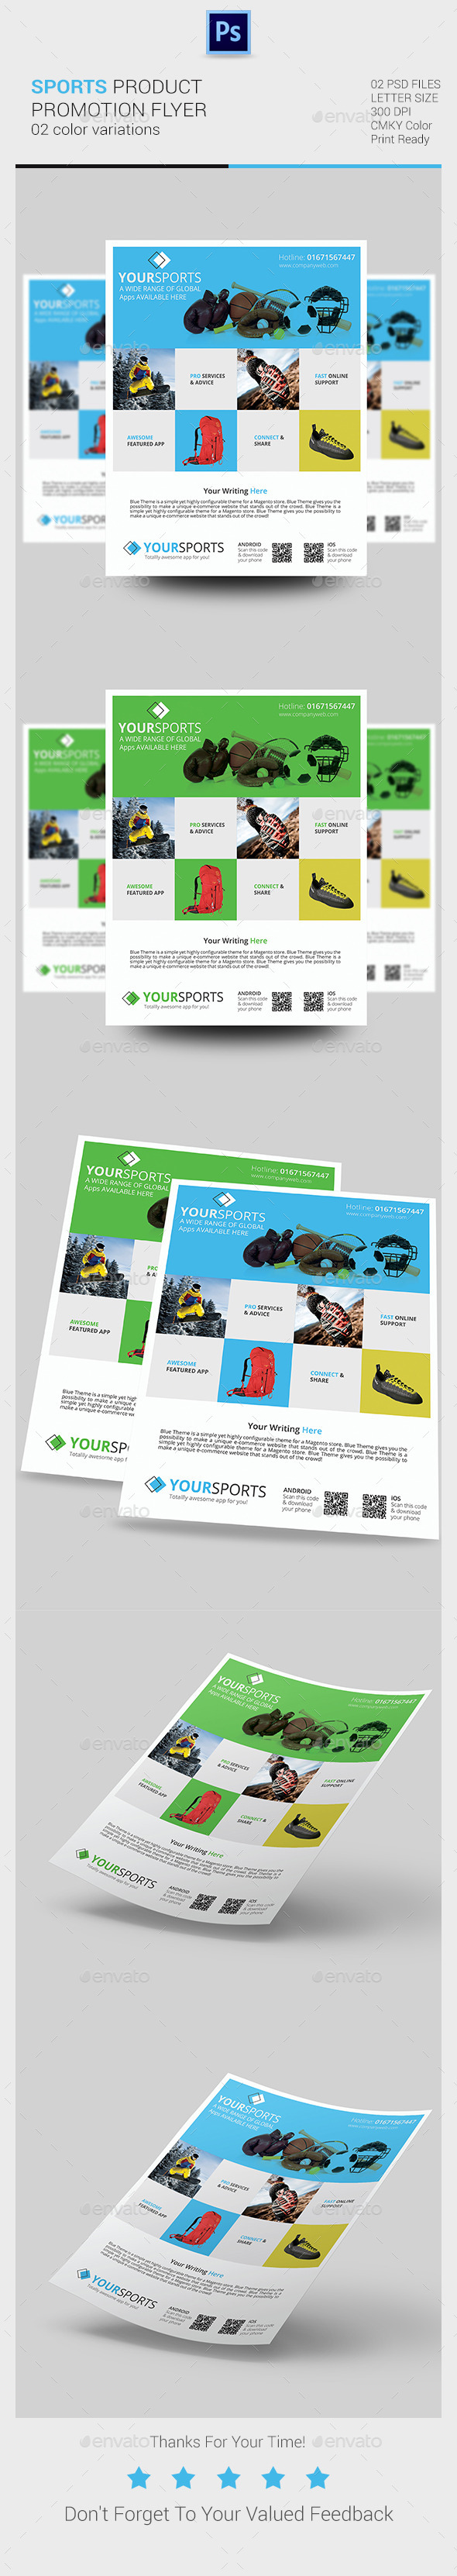 Sports Product Promotion Flyer - Sports Events